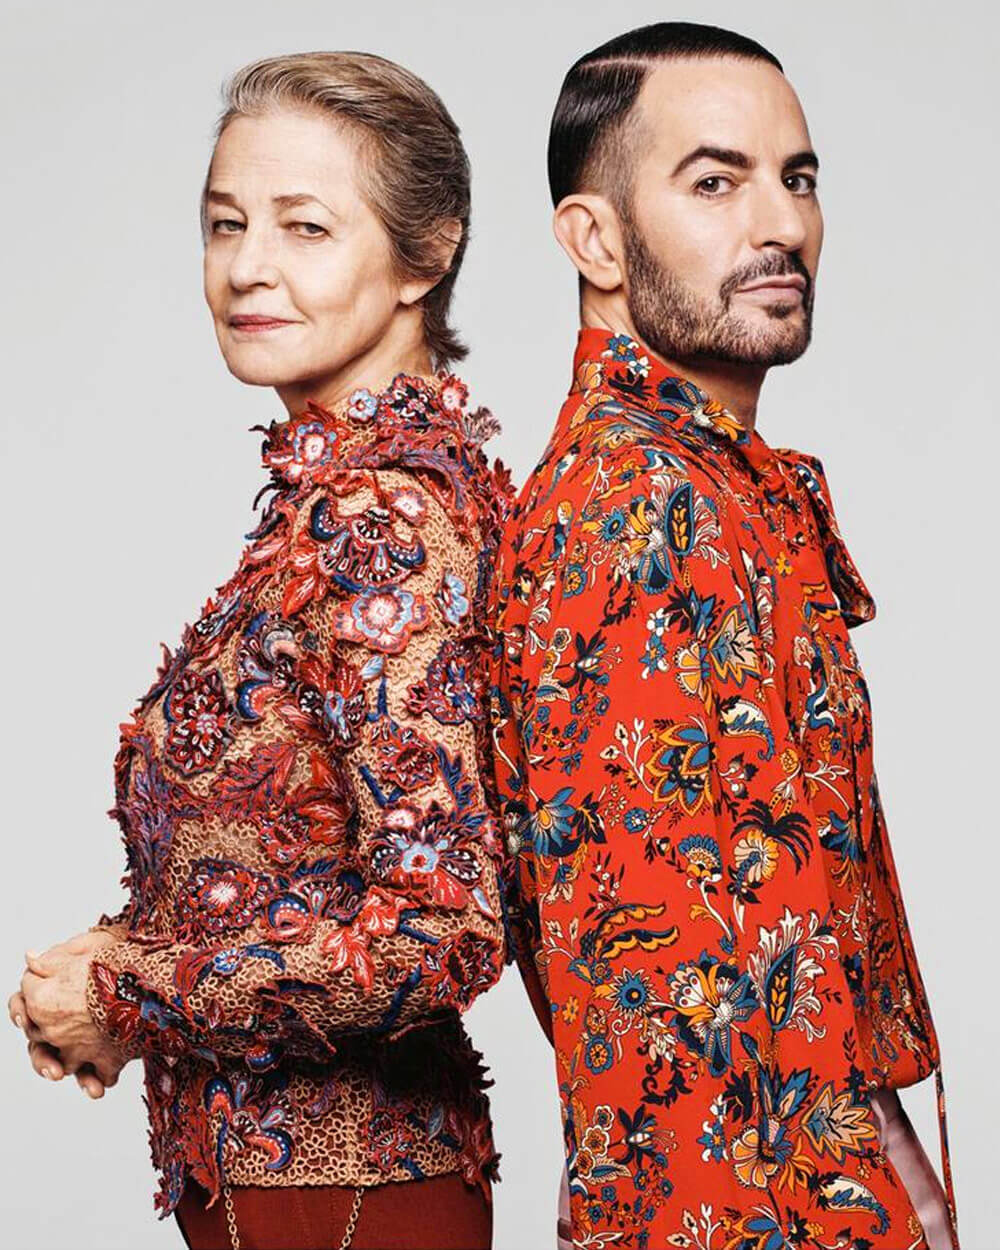 Givenchy Spring/Summer '20 campaign, fronted by Marc Jacobs and Charlotte Rampling